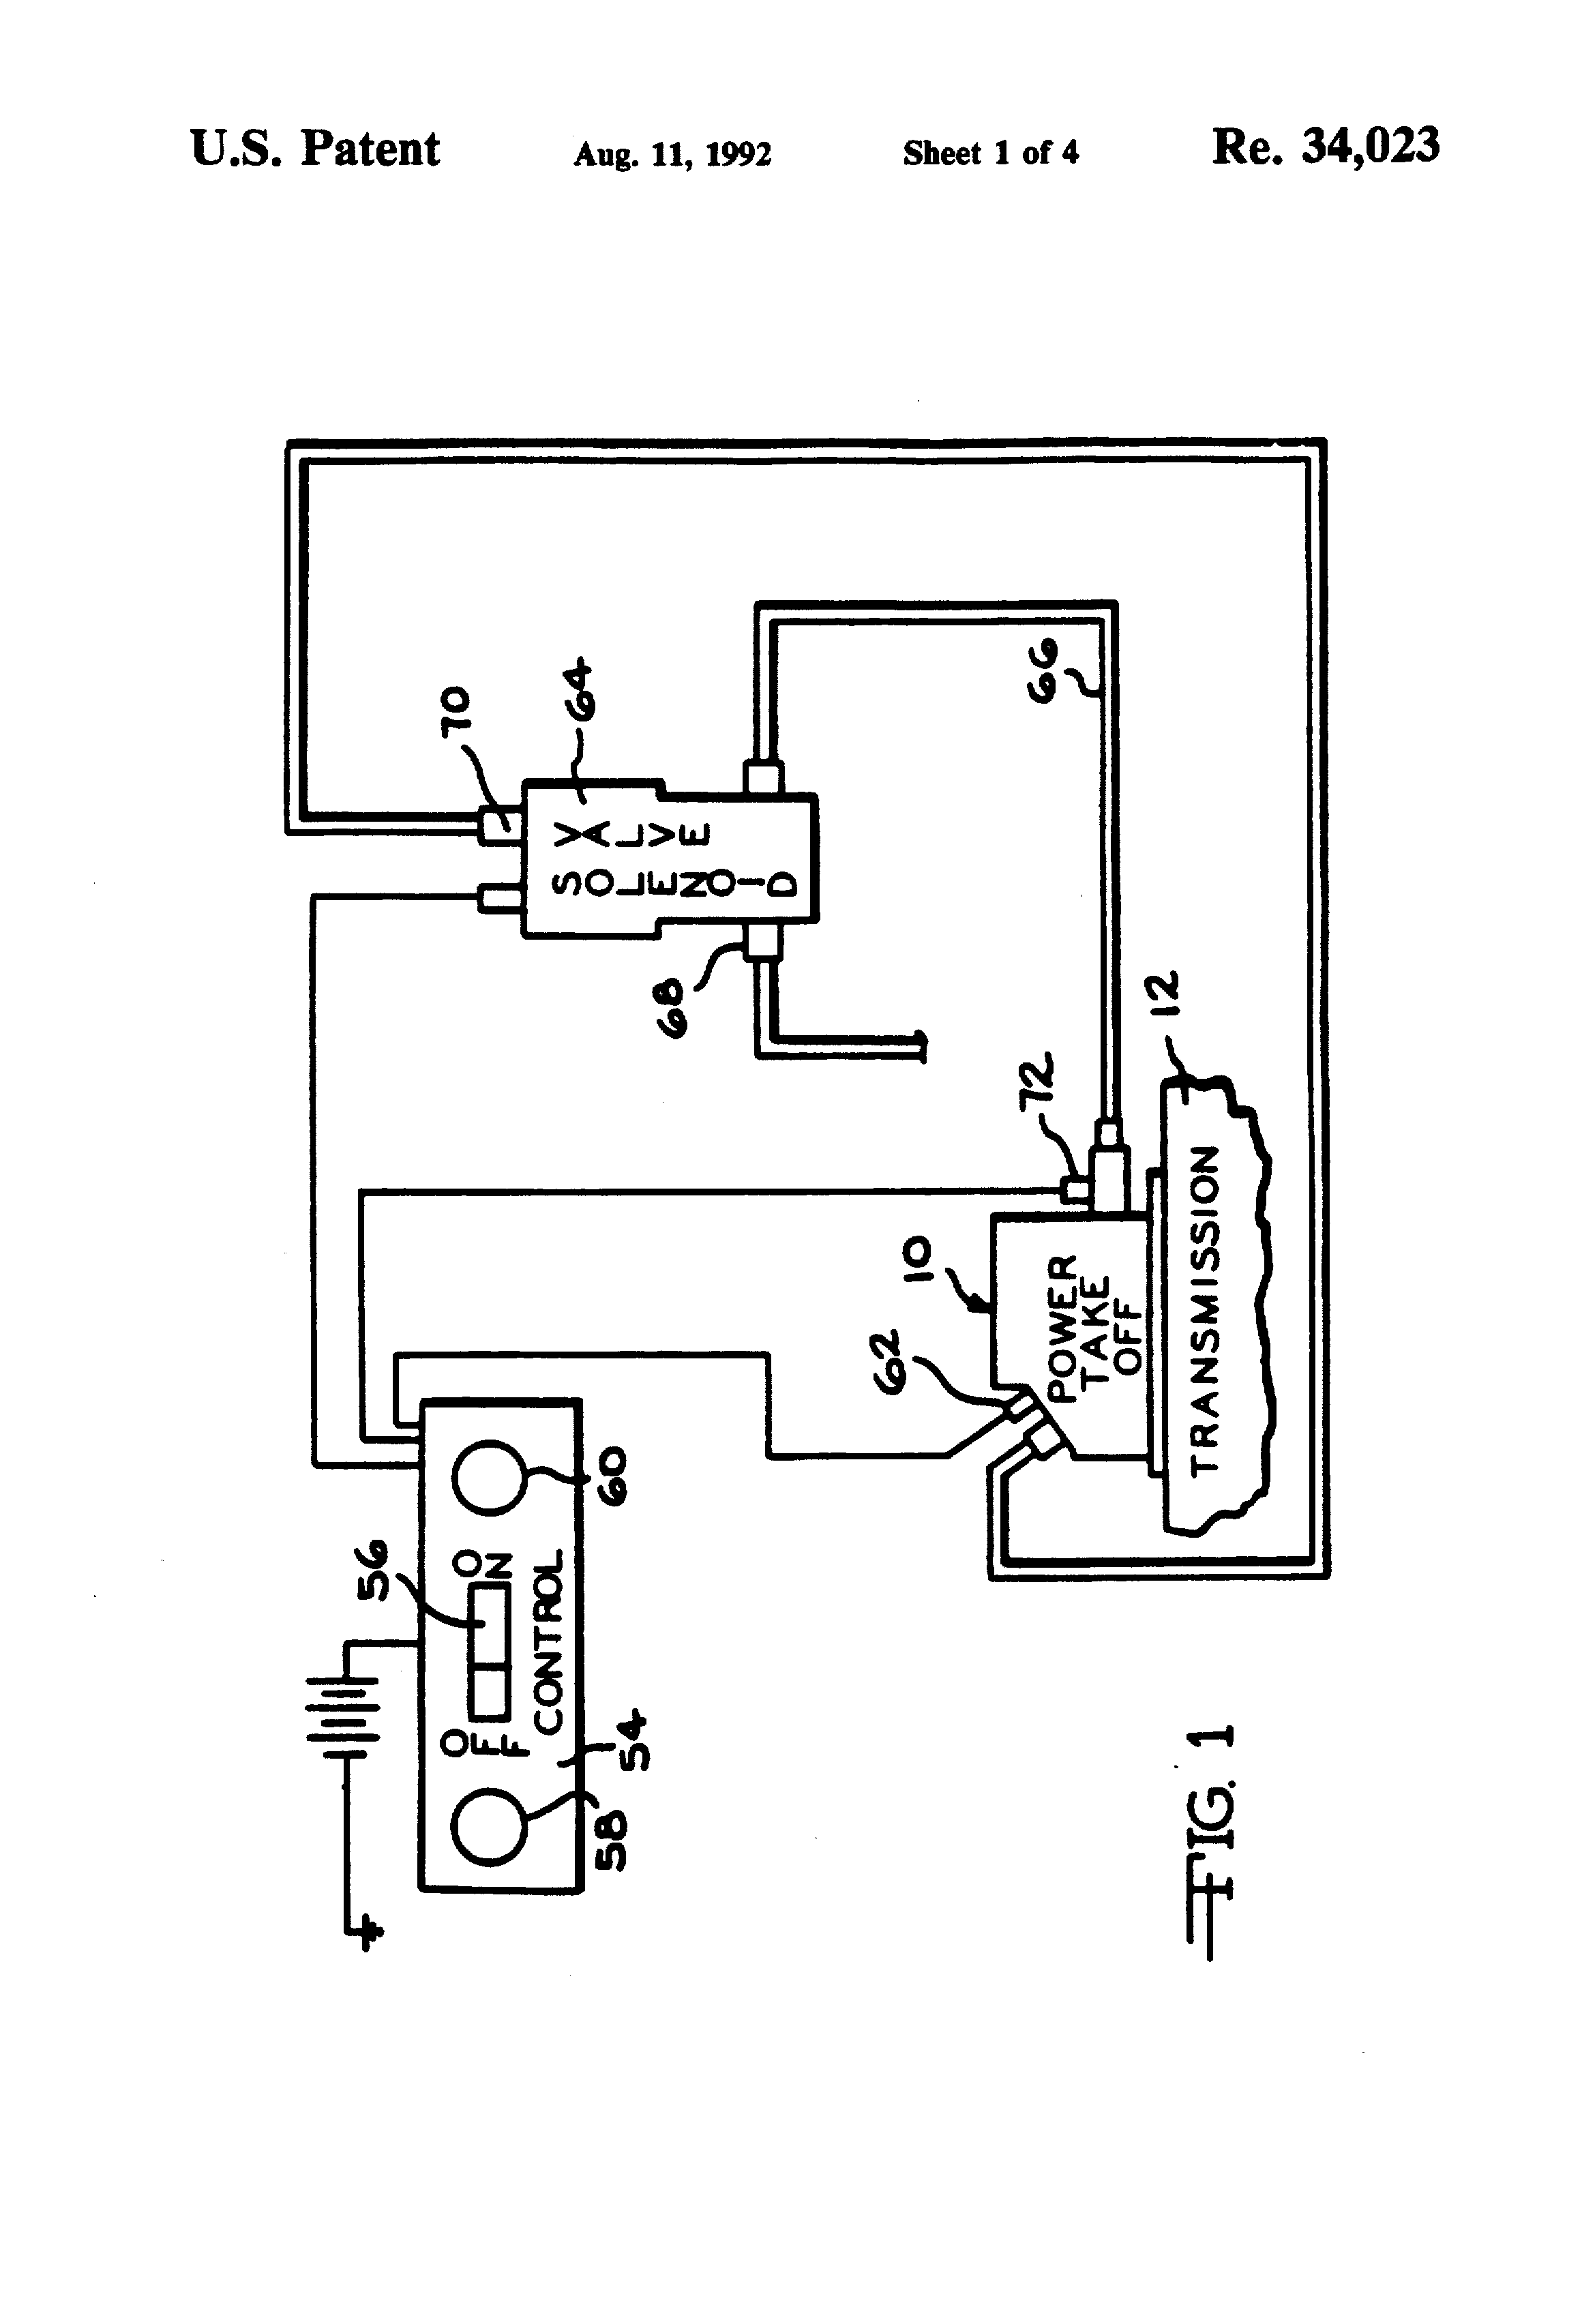 USRE34023 2 muncie pto wiring diagram muncie pto valve \u2022 wiring diagrams j chelsea pto wiring diagram at creativeand.co